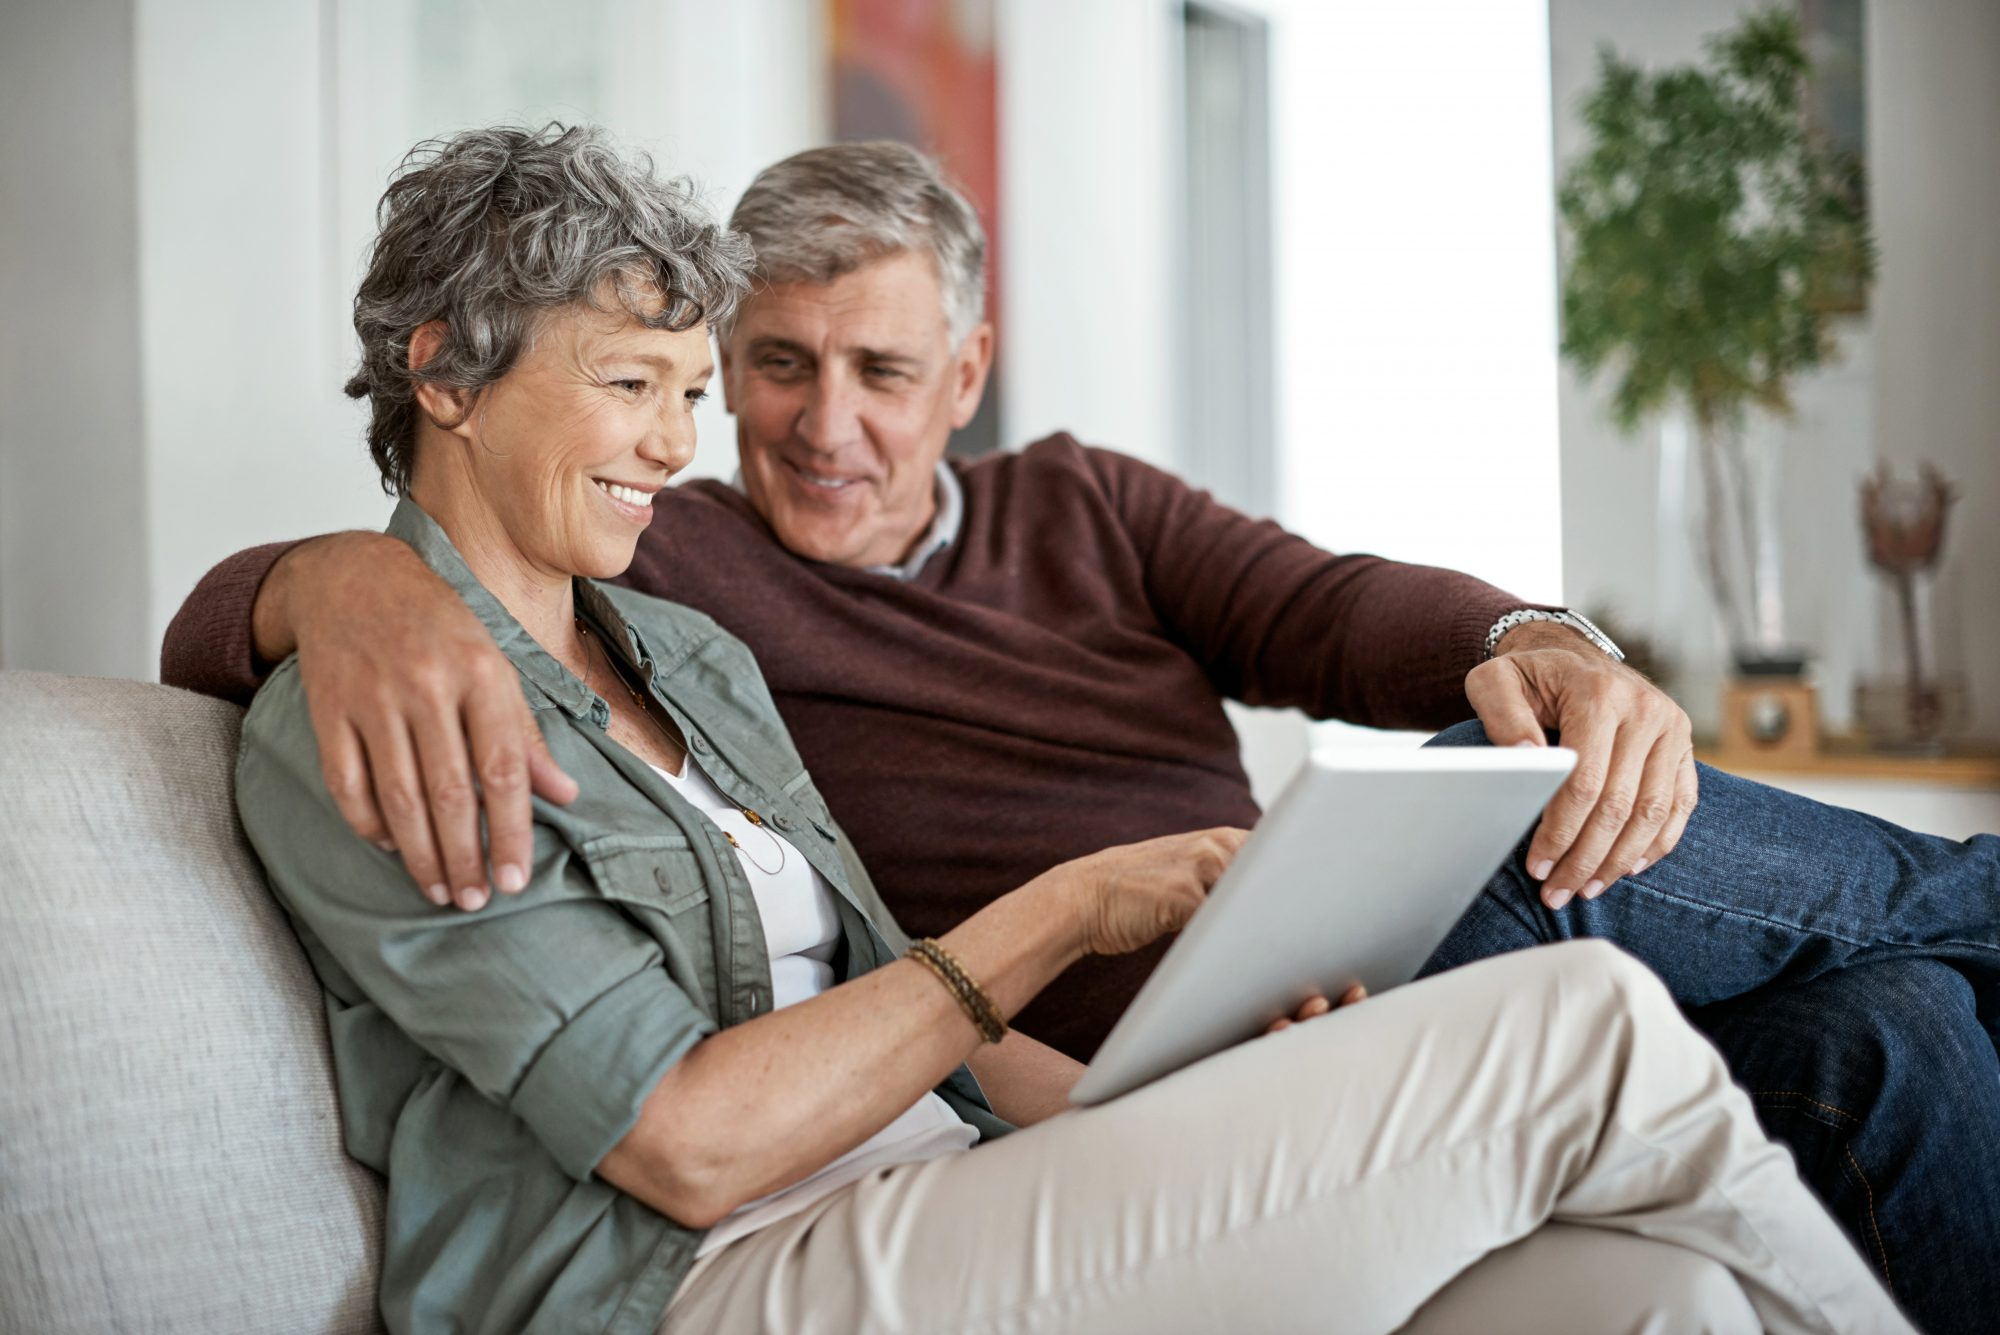 Mature man has his arm wrapped around Mature couple sit on the couch together and review their financials.wife while they sit on the couch together and review their financials.